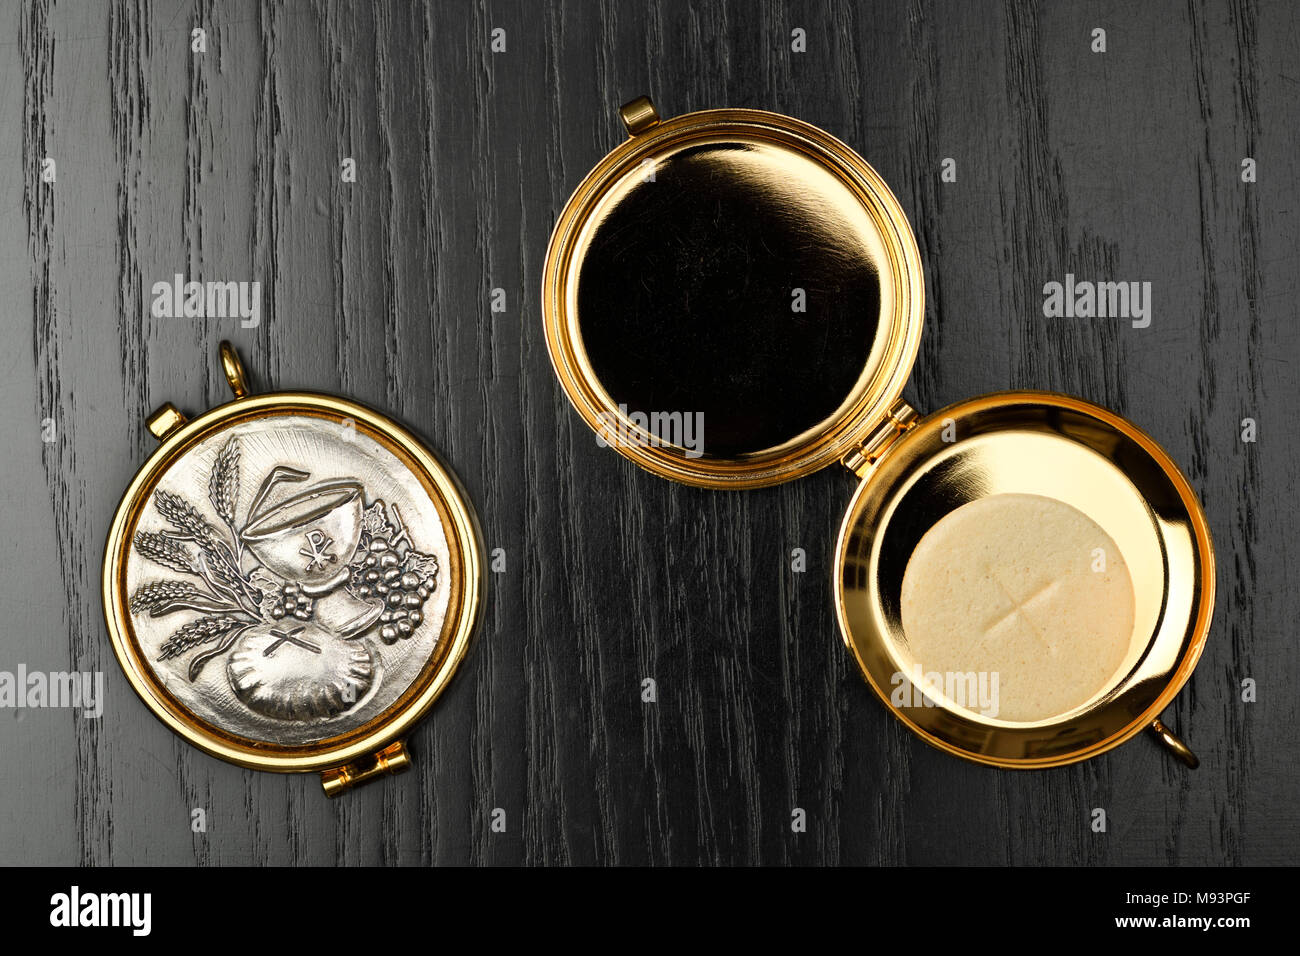 Host wafer of bread to be consecrated as the Body of Christ at Mass in a gold Pyx on a black oak table - Stock Image